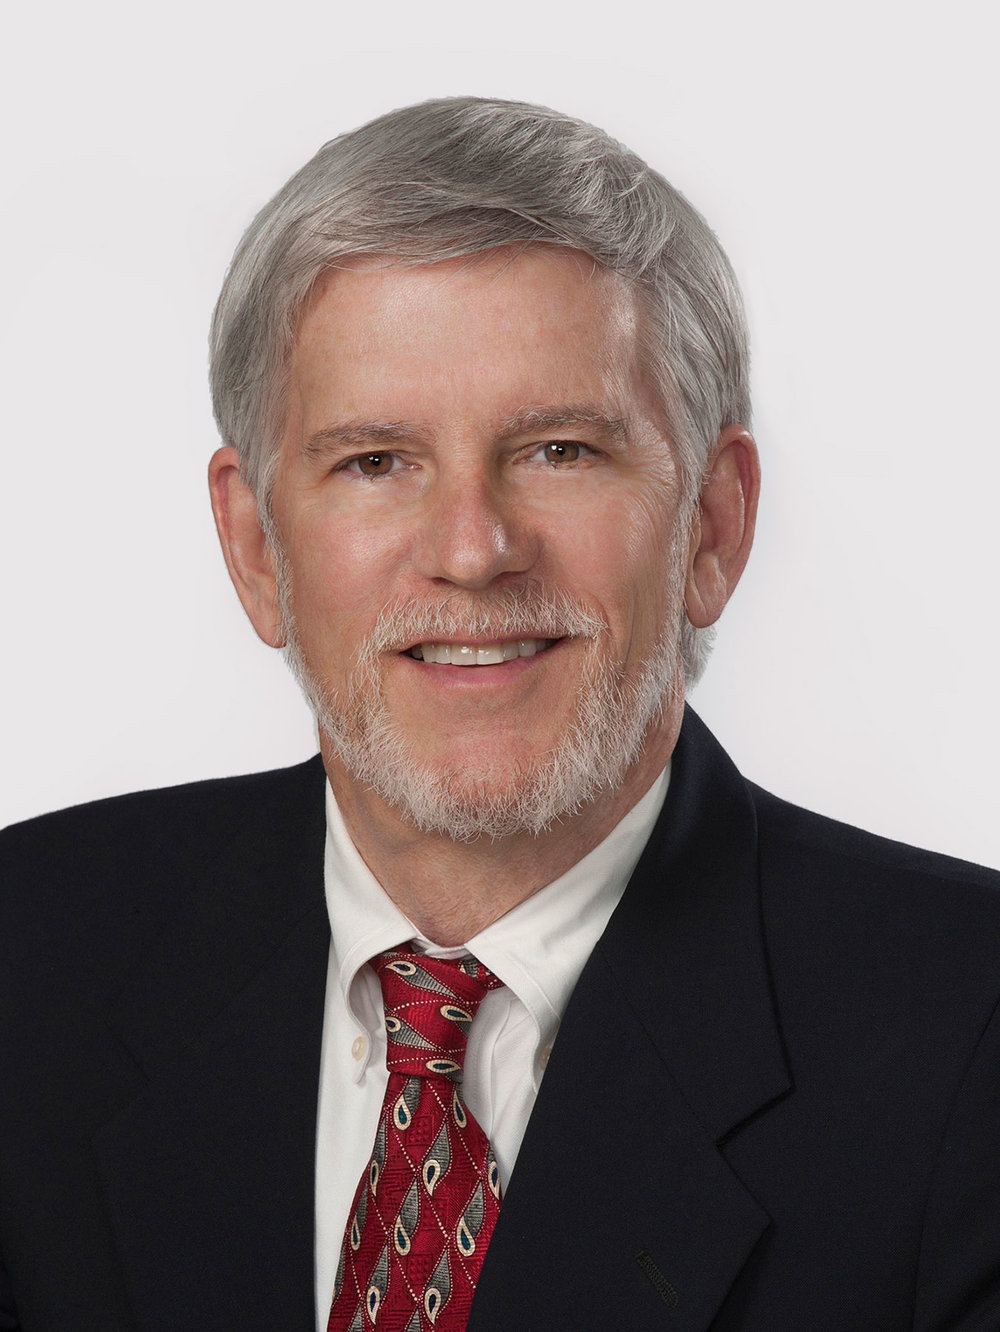 Gordon E. Jones, Senior Vice President of Day Hagan Asset Management in Sarasota, FL.